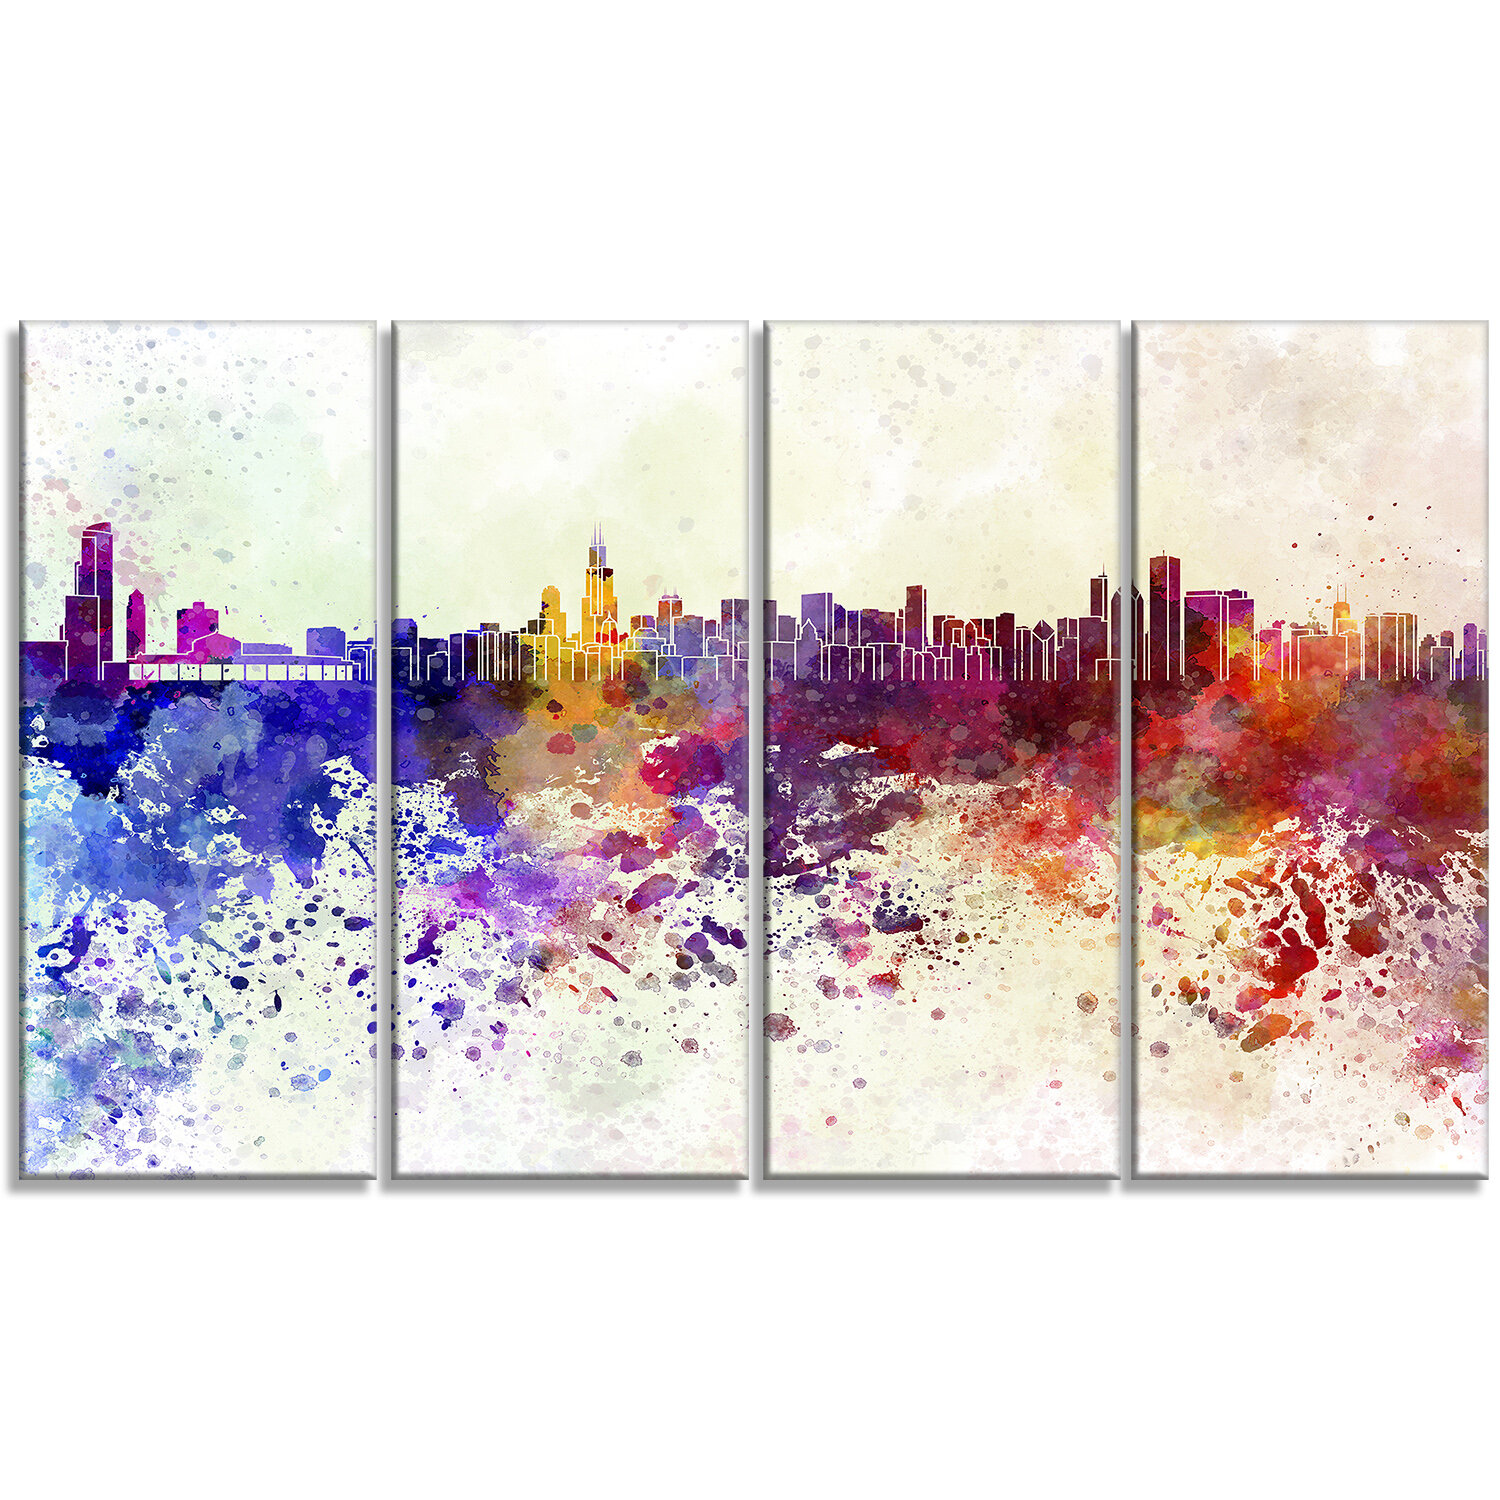 Designart Chicago Skyline Cityscape 4 Piece Painting Print On Wrapped Canvas Set Wayfair